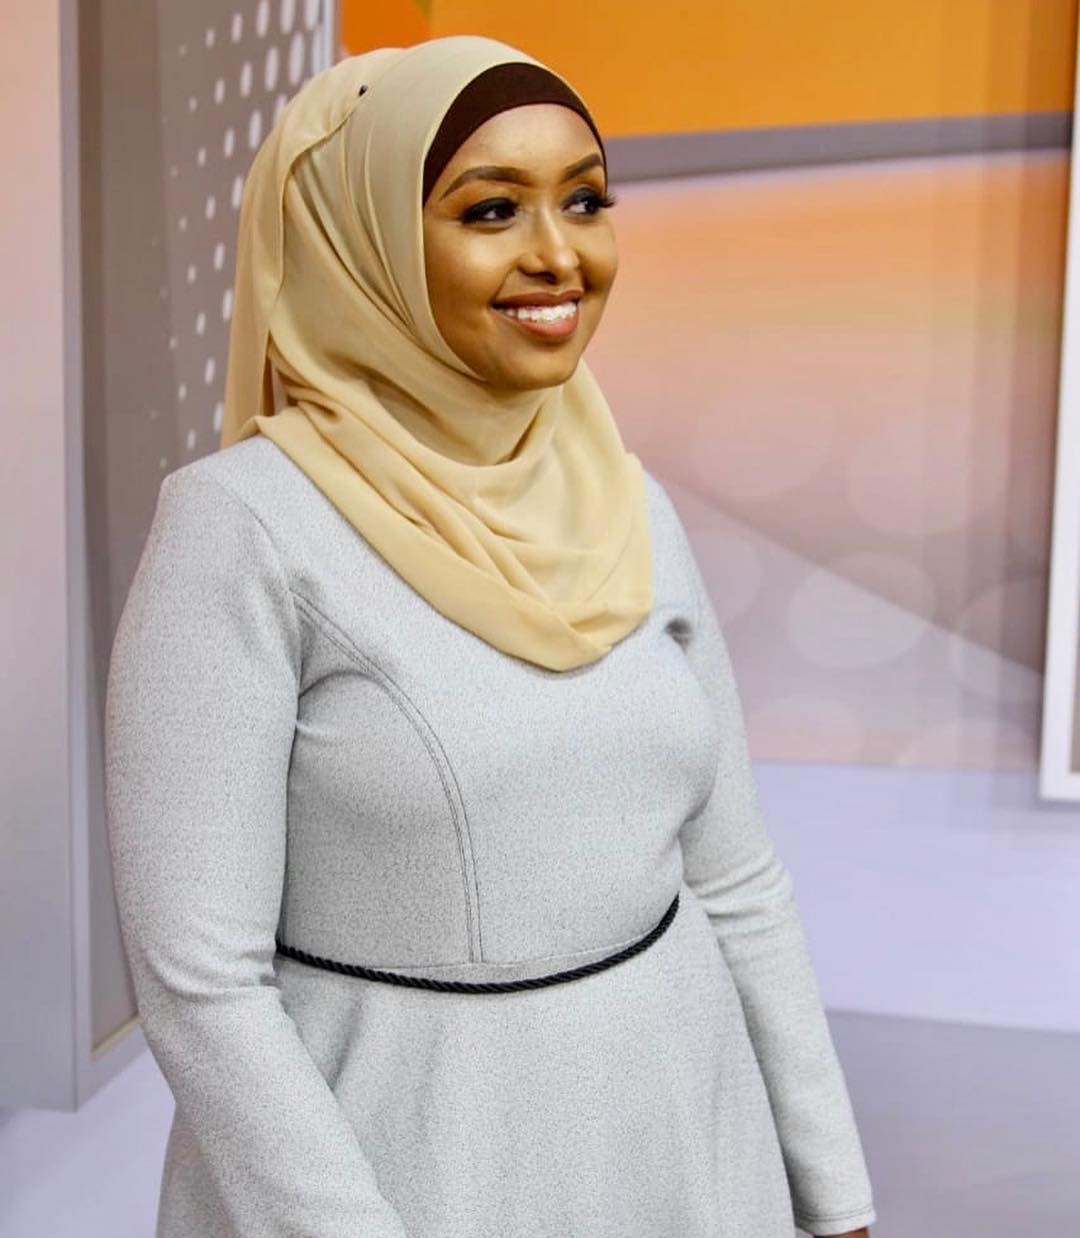 jamila mohammd - Beauty and brains: Married women running the T industry